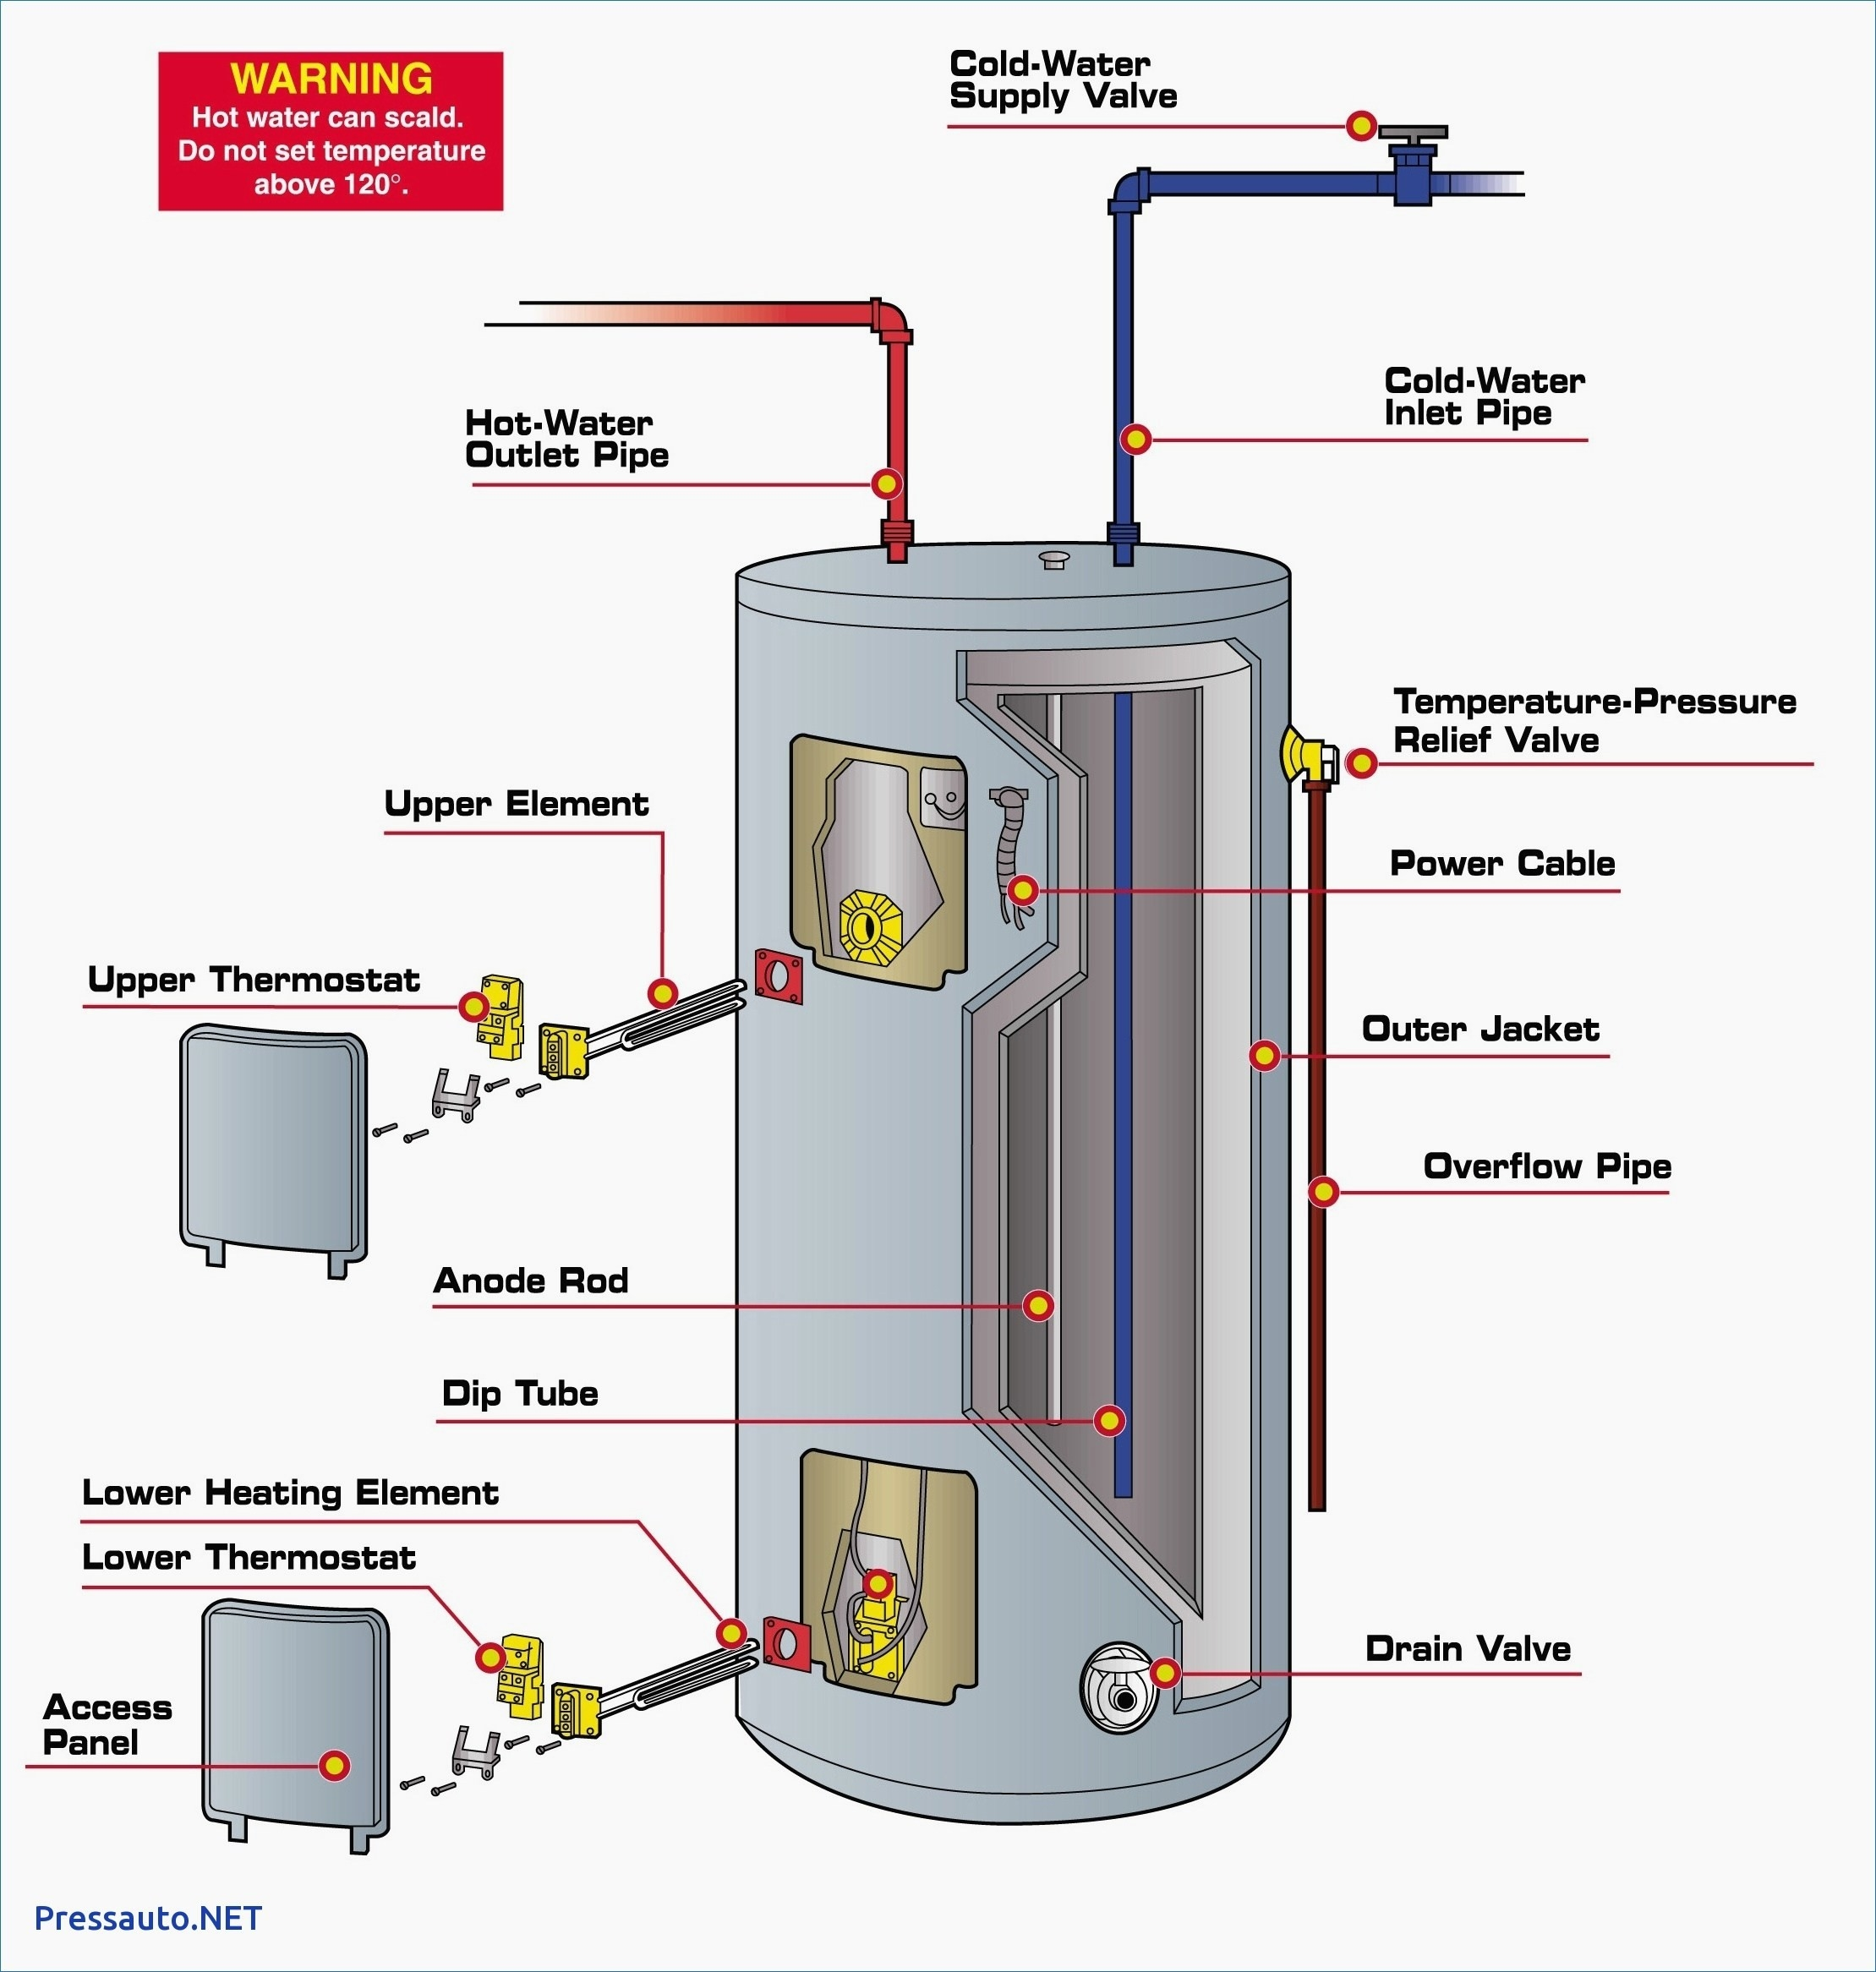 wiring diagram for hot water heater element Download-Wiring Diagram Electric Water Heater Fresh New Hot Water Heater Wiring Diagram Diagram 15-l